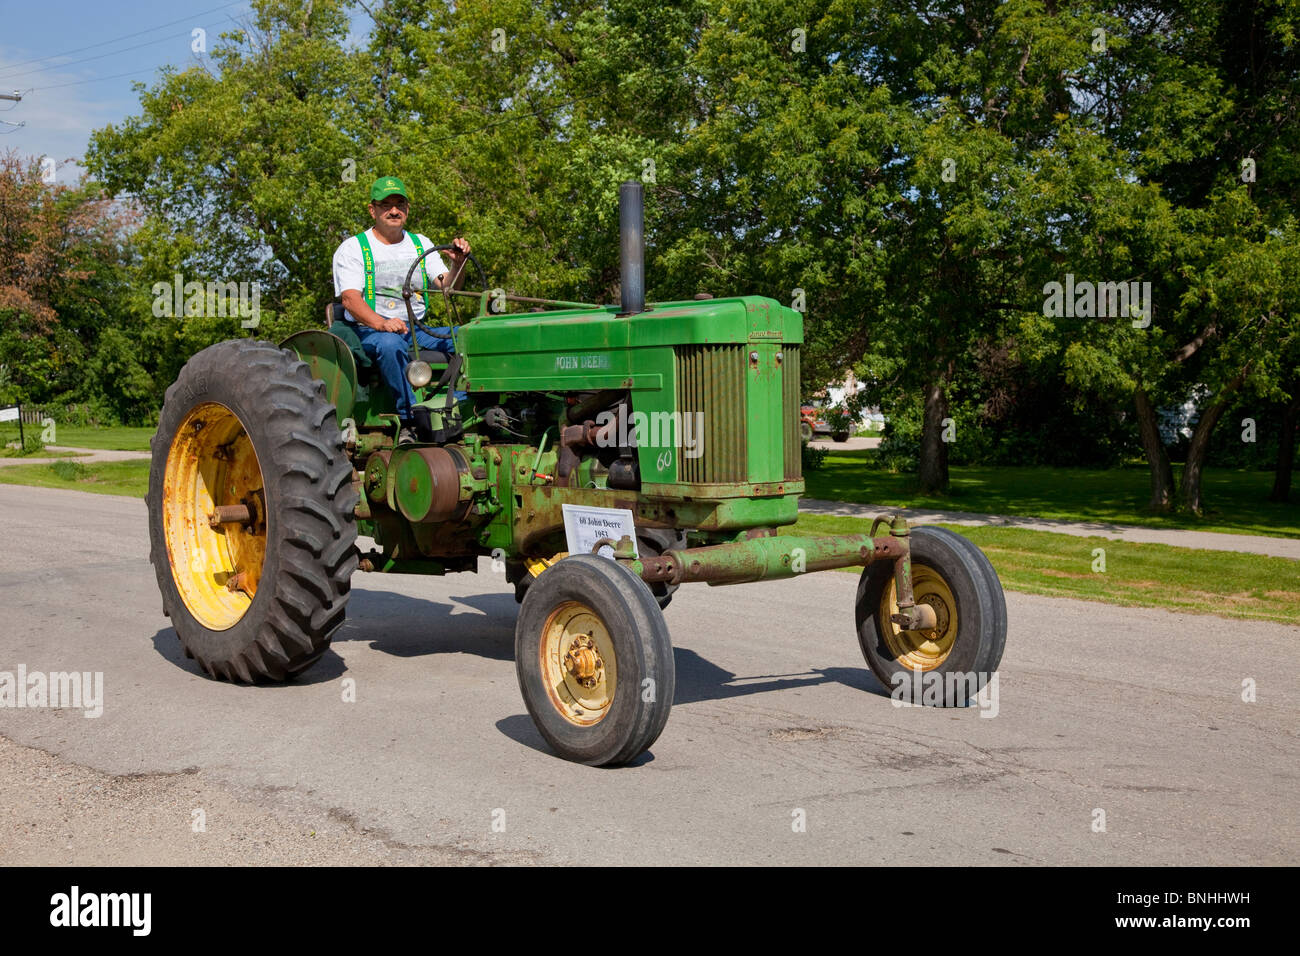 A procession of antique tractors at the 2010 Tractor Trek in Reinland, Manitoba, Canada. - Stock Image